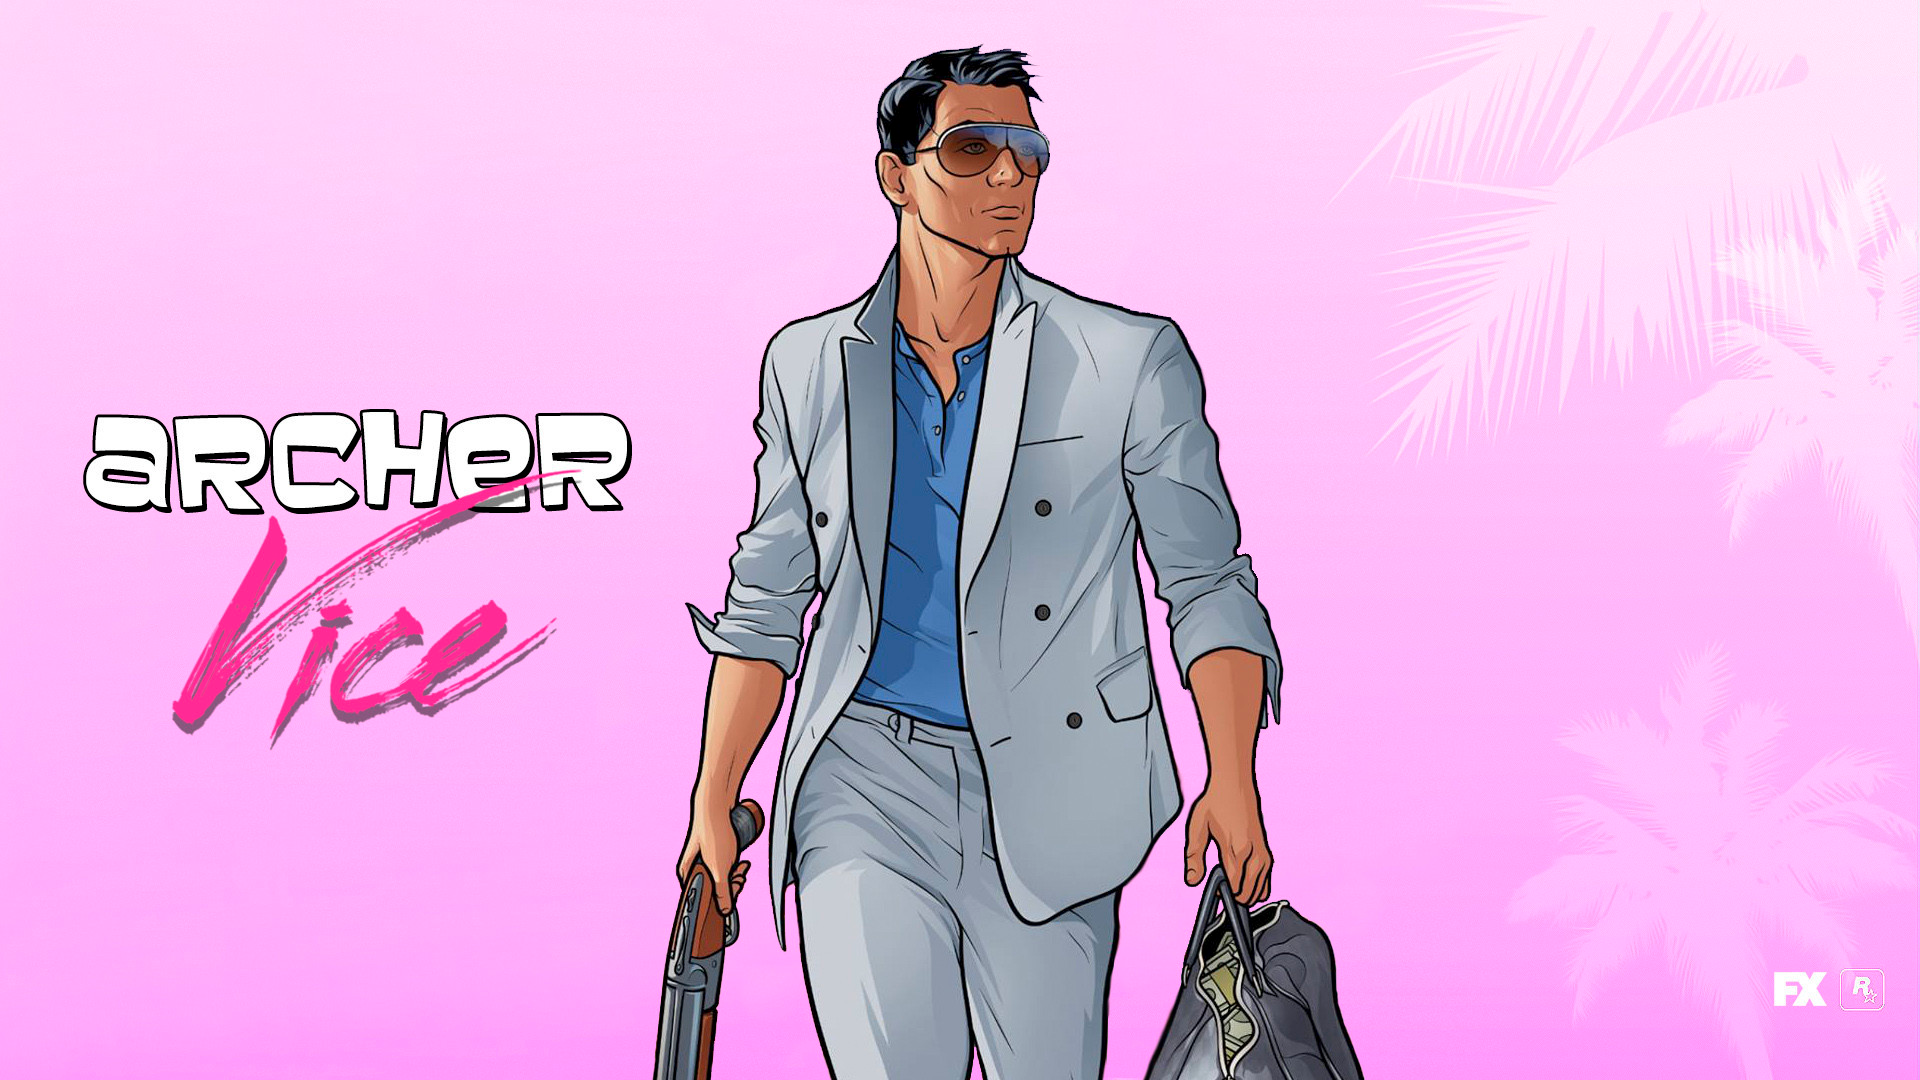 archer wallpaper fx pictures to pin on pinterest